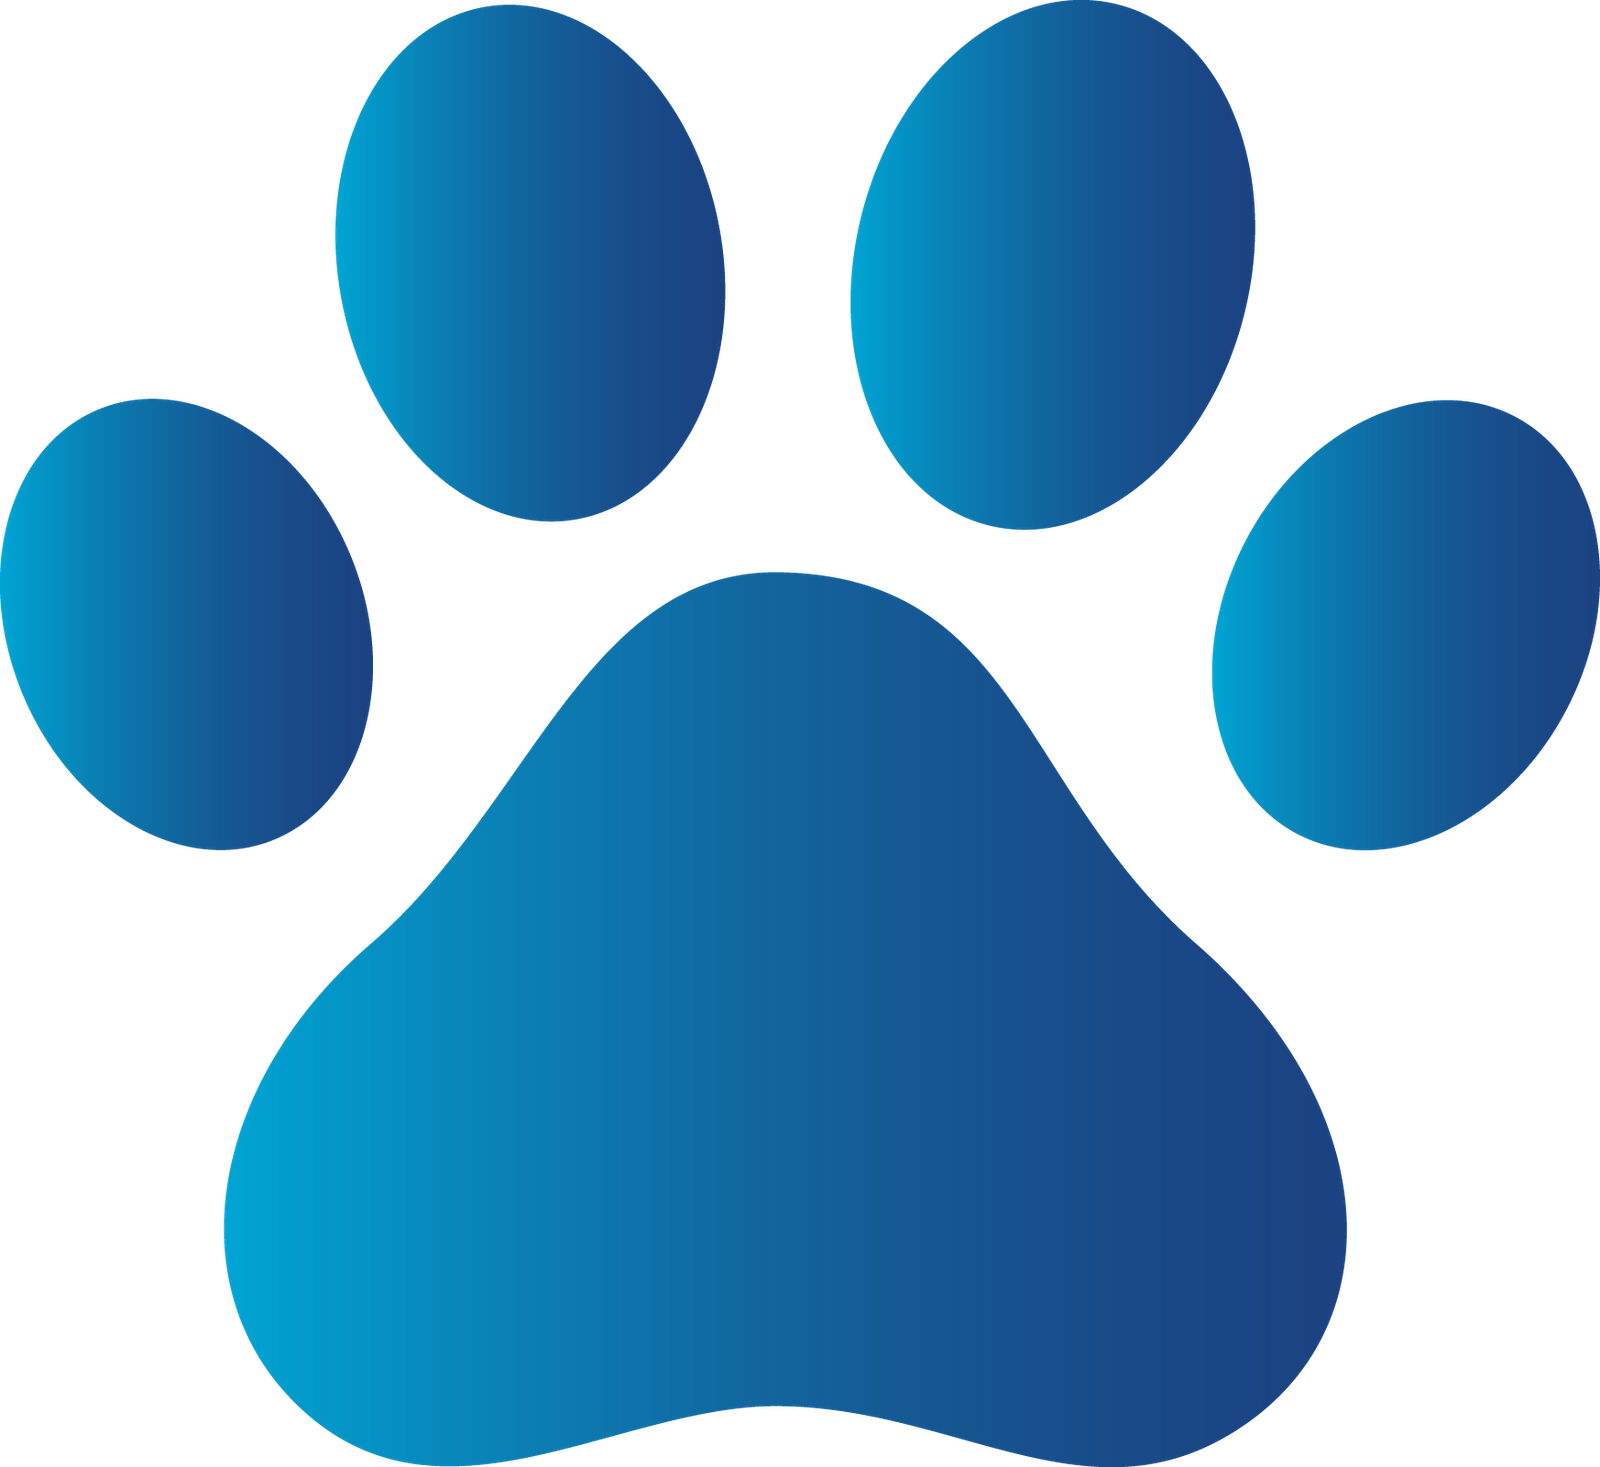 Puppy paw png. Canine connections stop abuse